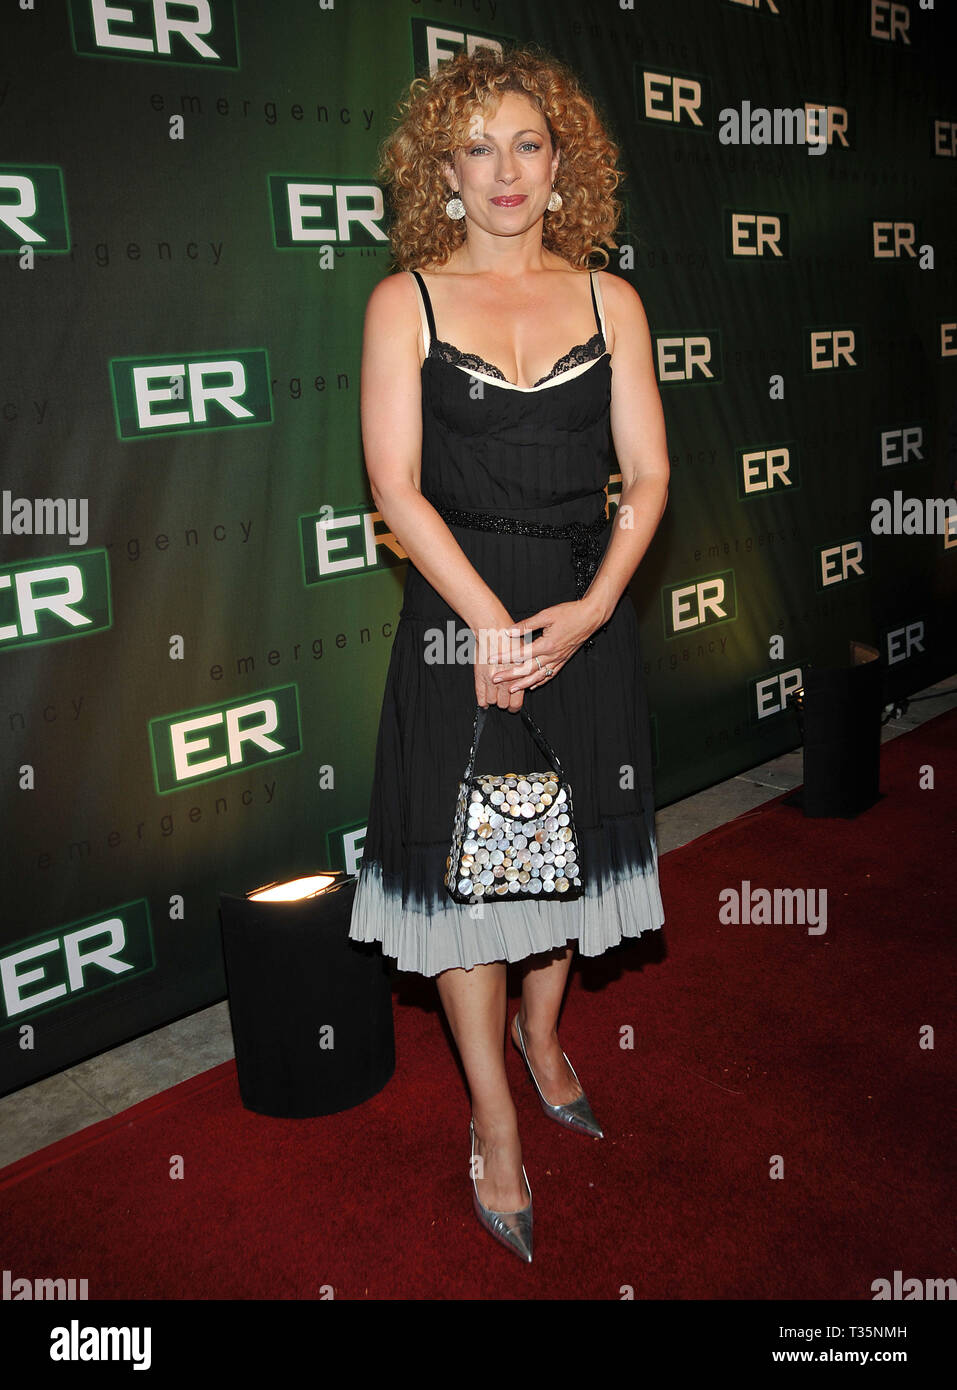 Alex Kingston Er Says Goodbye After 15 Years At The Socoal Club In Los Angeles Kingstonalex 26 Red Carpet Event Vertical Usa Film Industry Celebrities Photography Bestof Arts Culture And Entertainment Topix